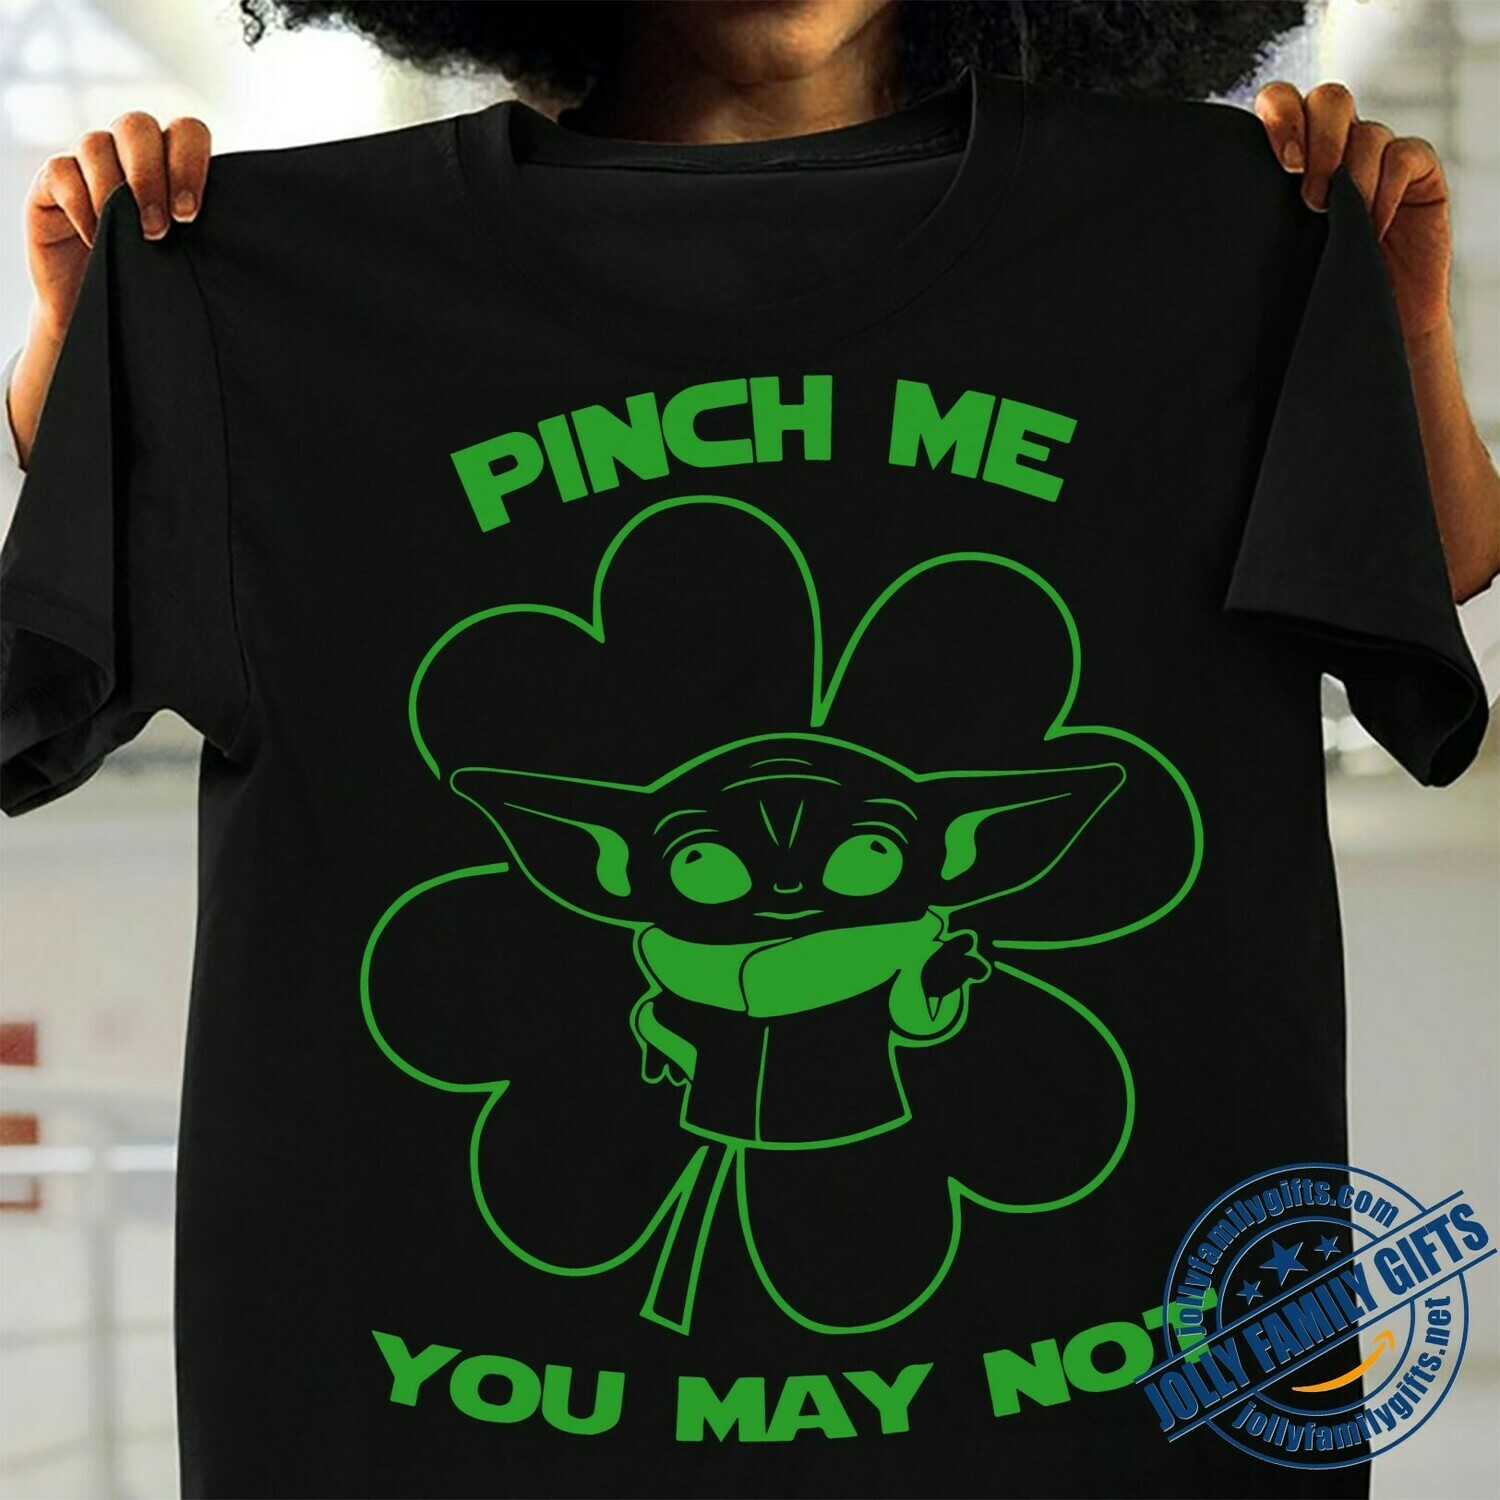 Baby Yoda Pinch Me You May Not St. Patrick's Day The Mandalorian with death Star Wars Movie  T-Shirt Hoodie Sweatshirt Sweater Tee Kids Youth Gifts Jolly Family Gifts